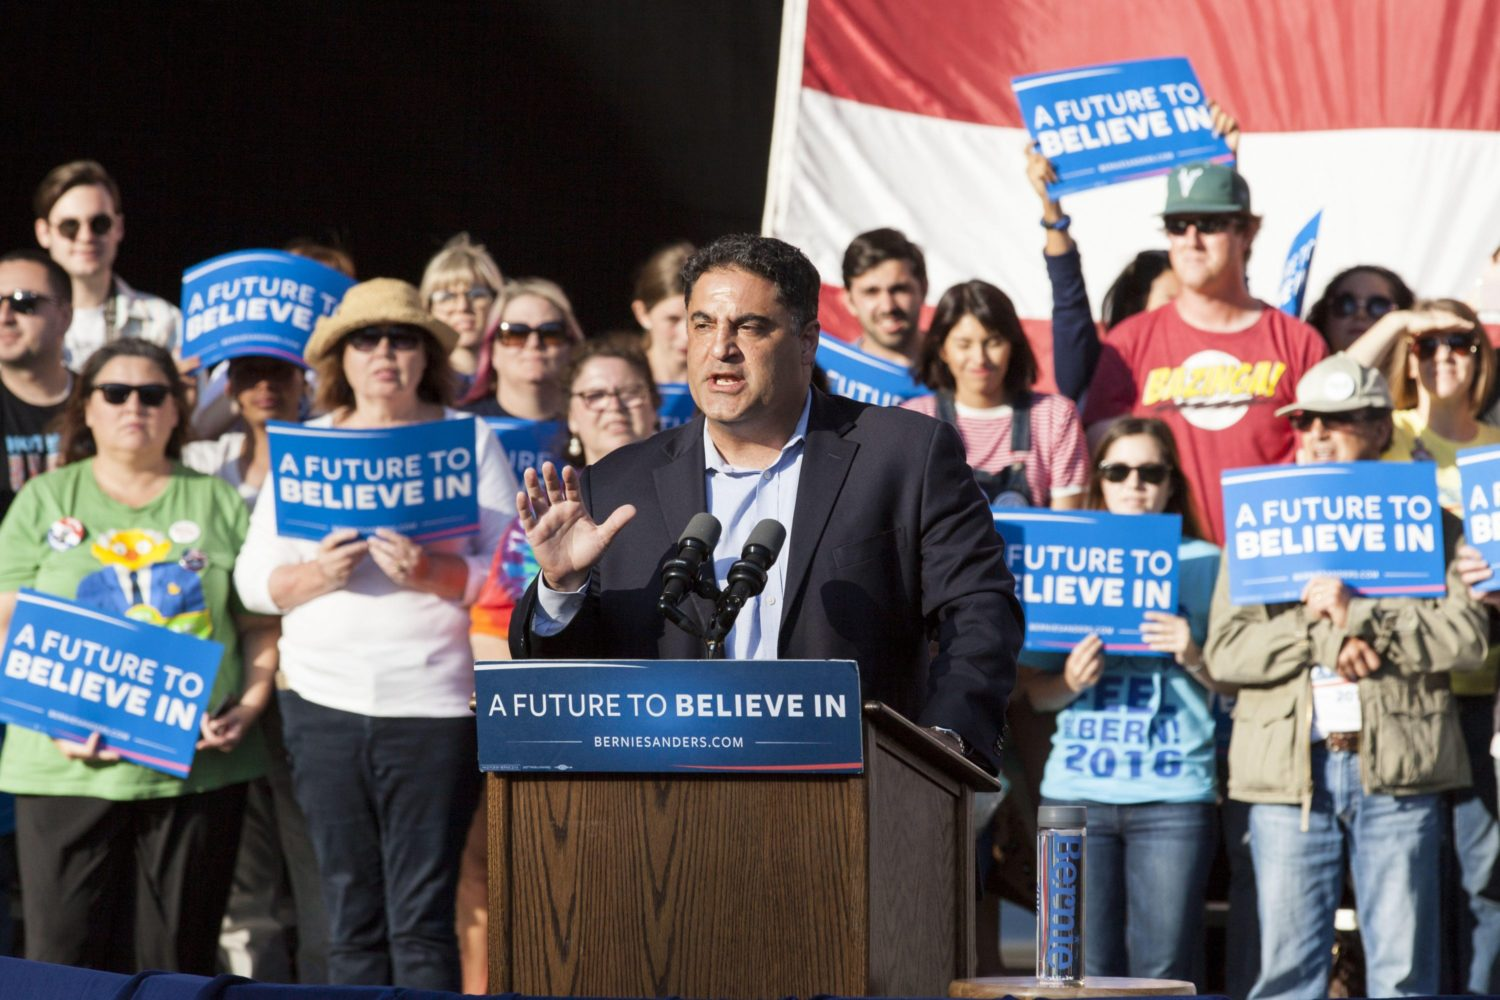 Cenk Uygur Just Might Be the Future of Liberal Media